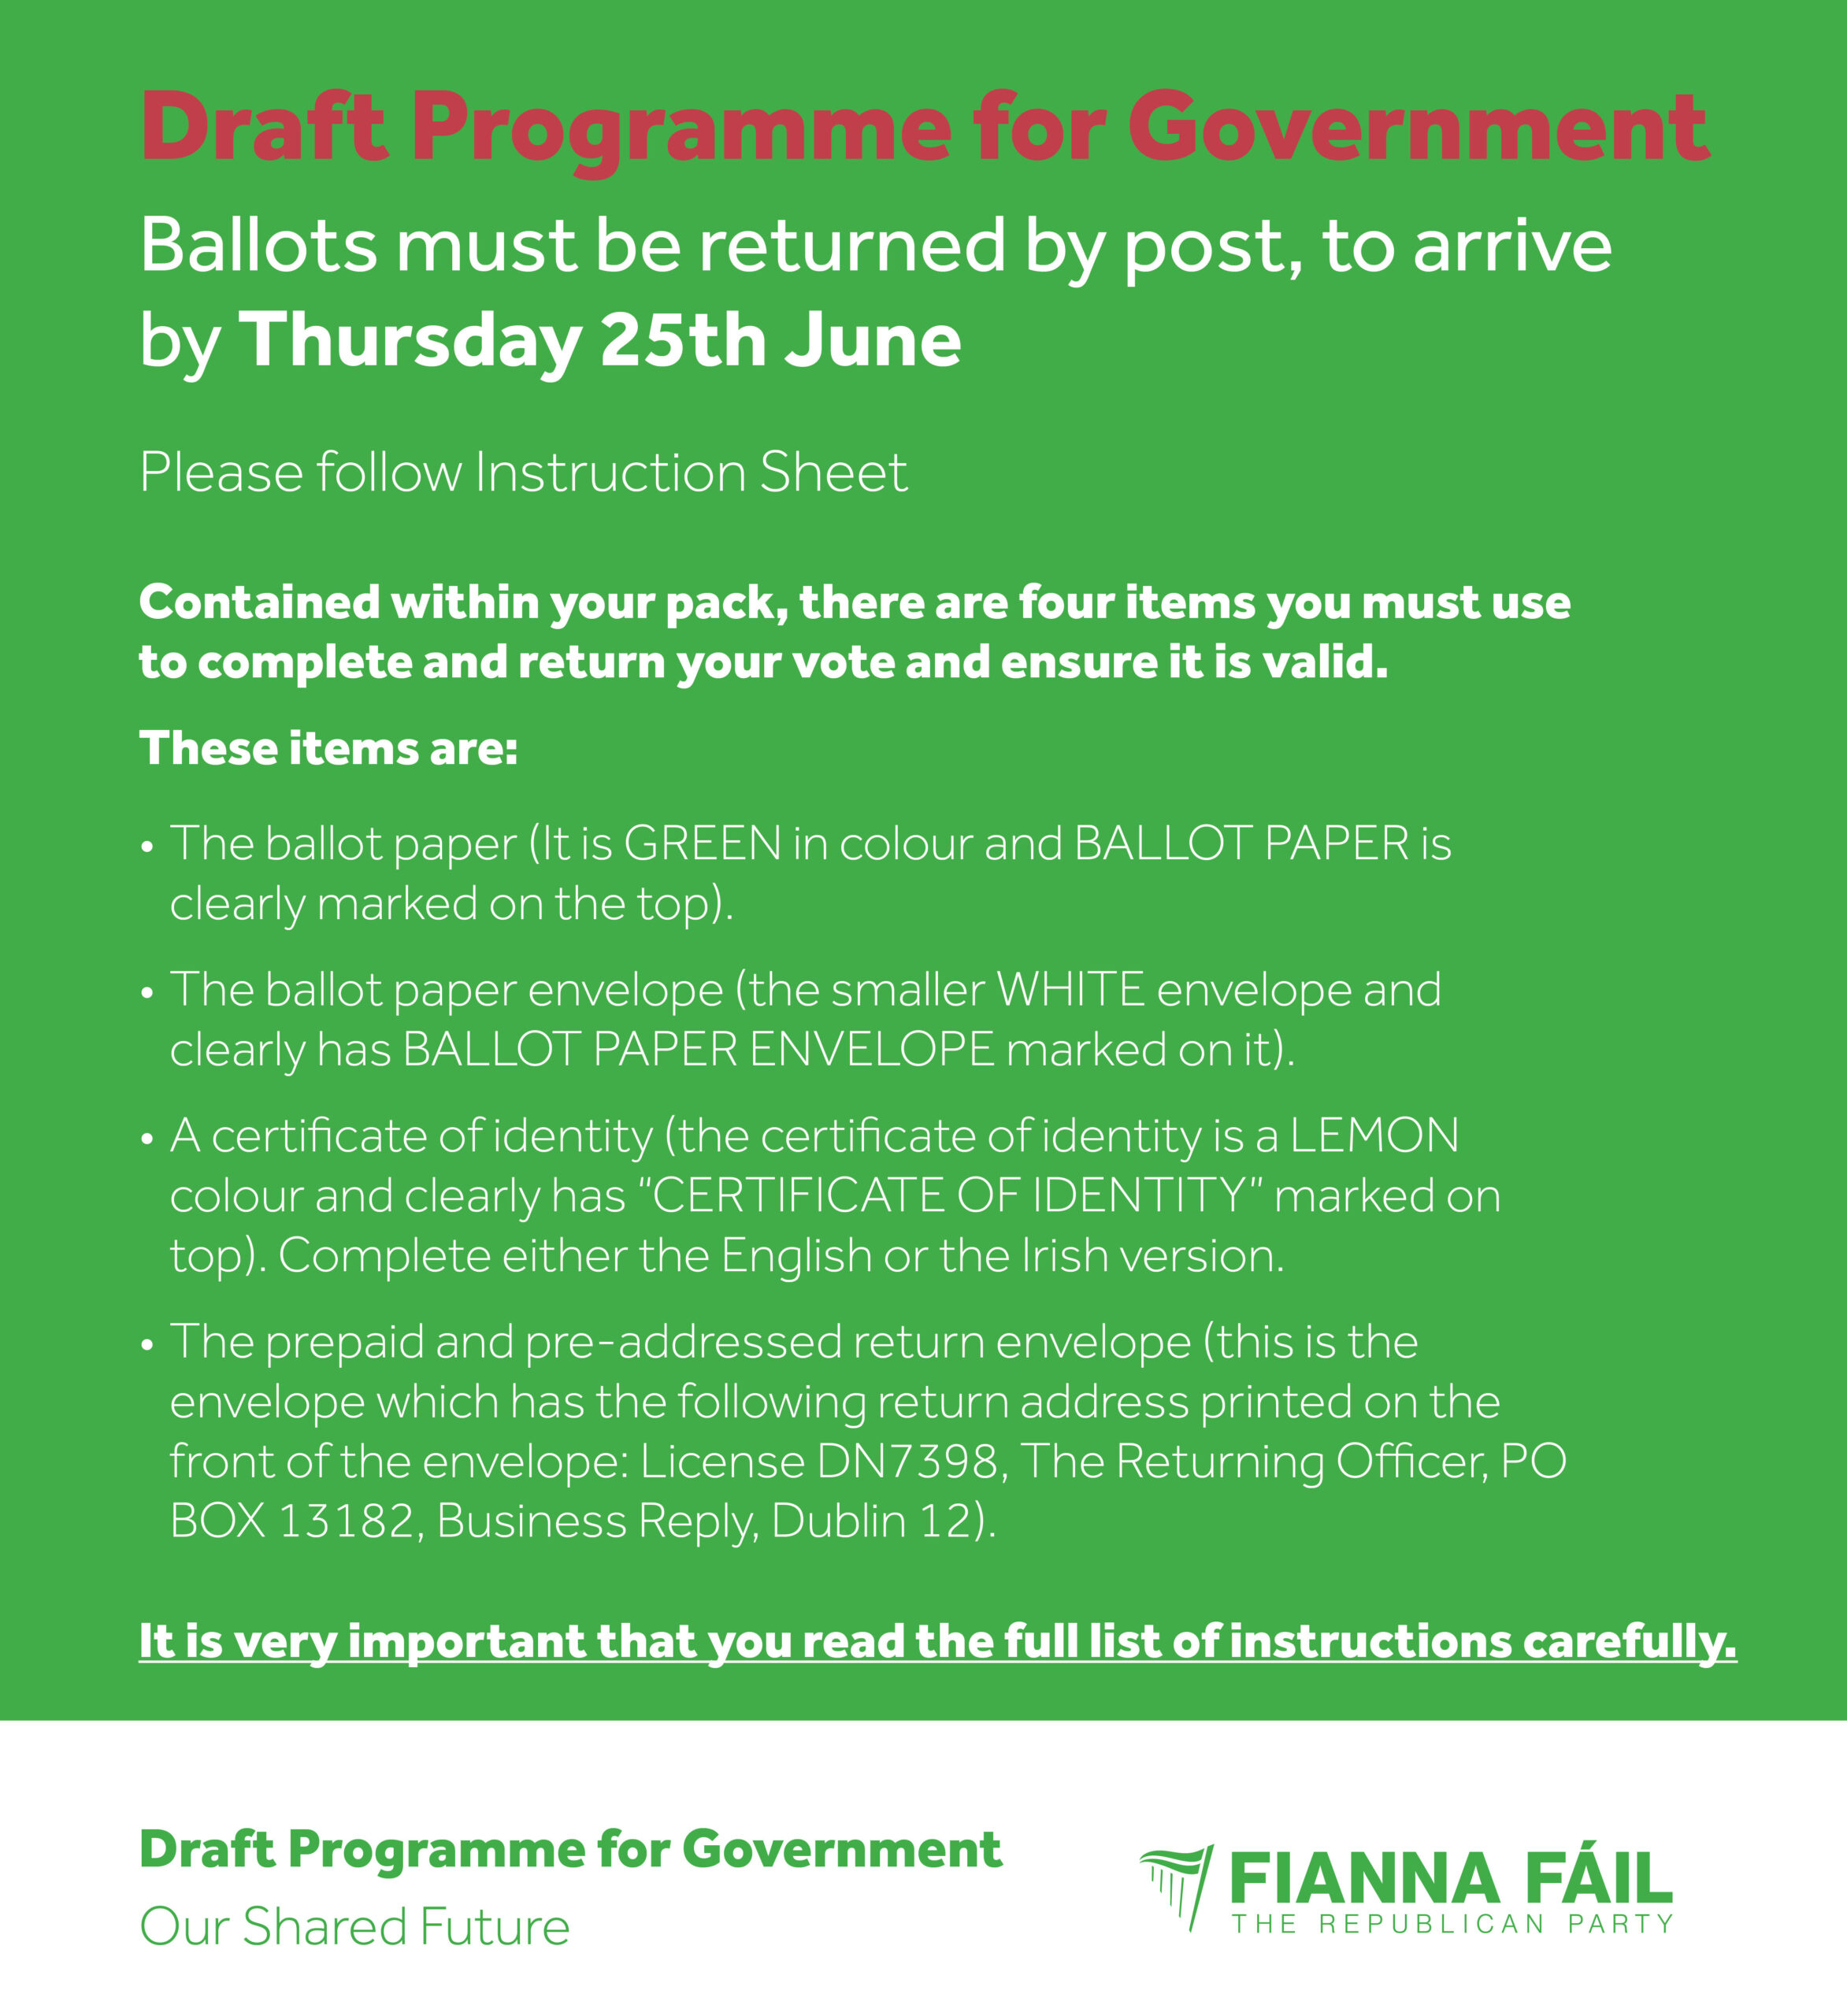 Image detailing steps for ballot for Programme for Government in Fianna Fail